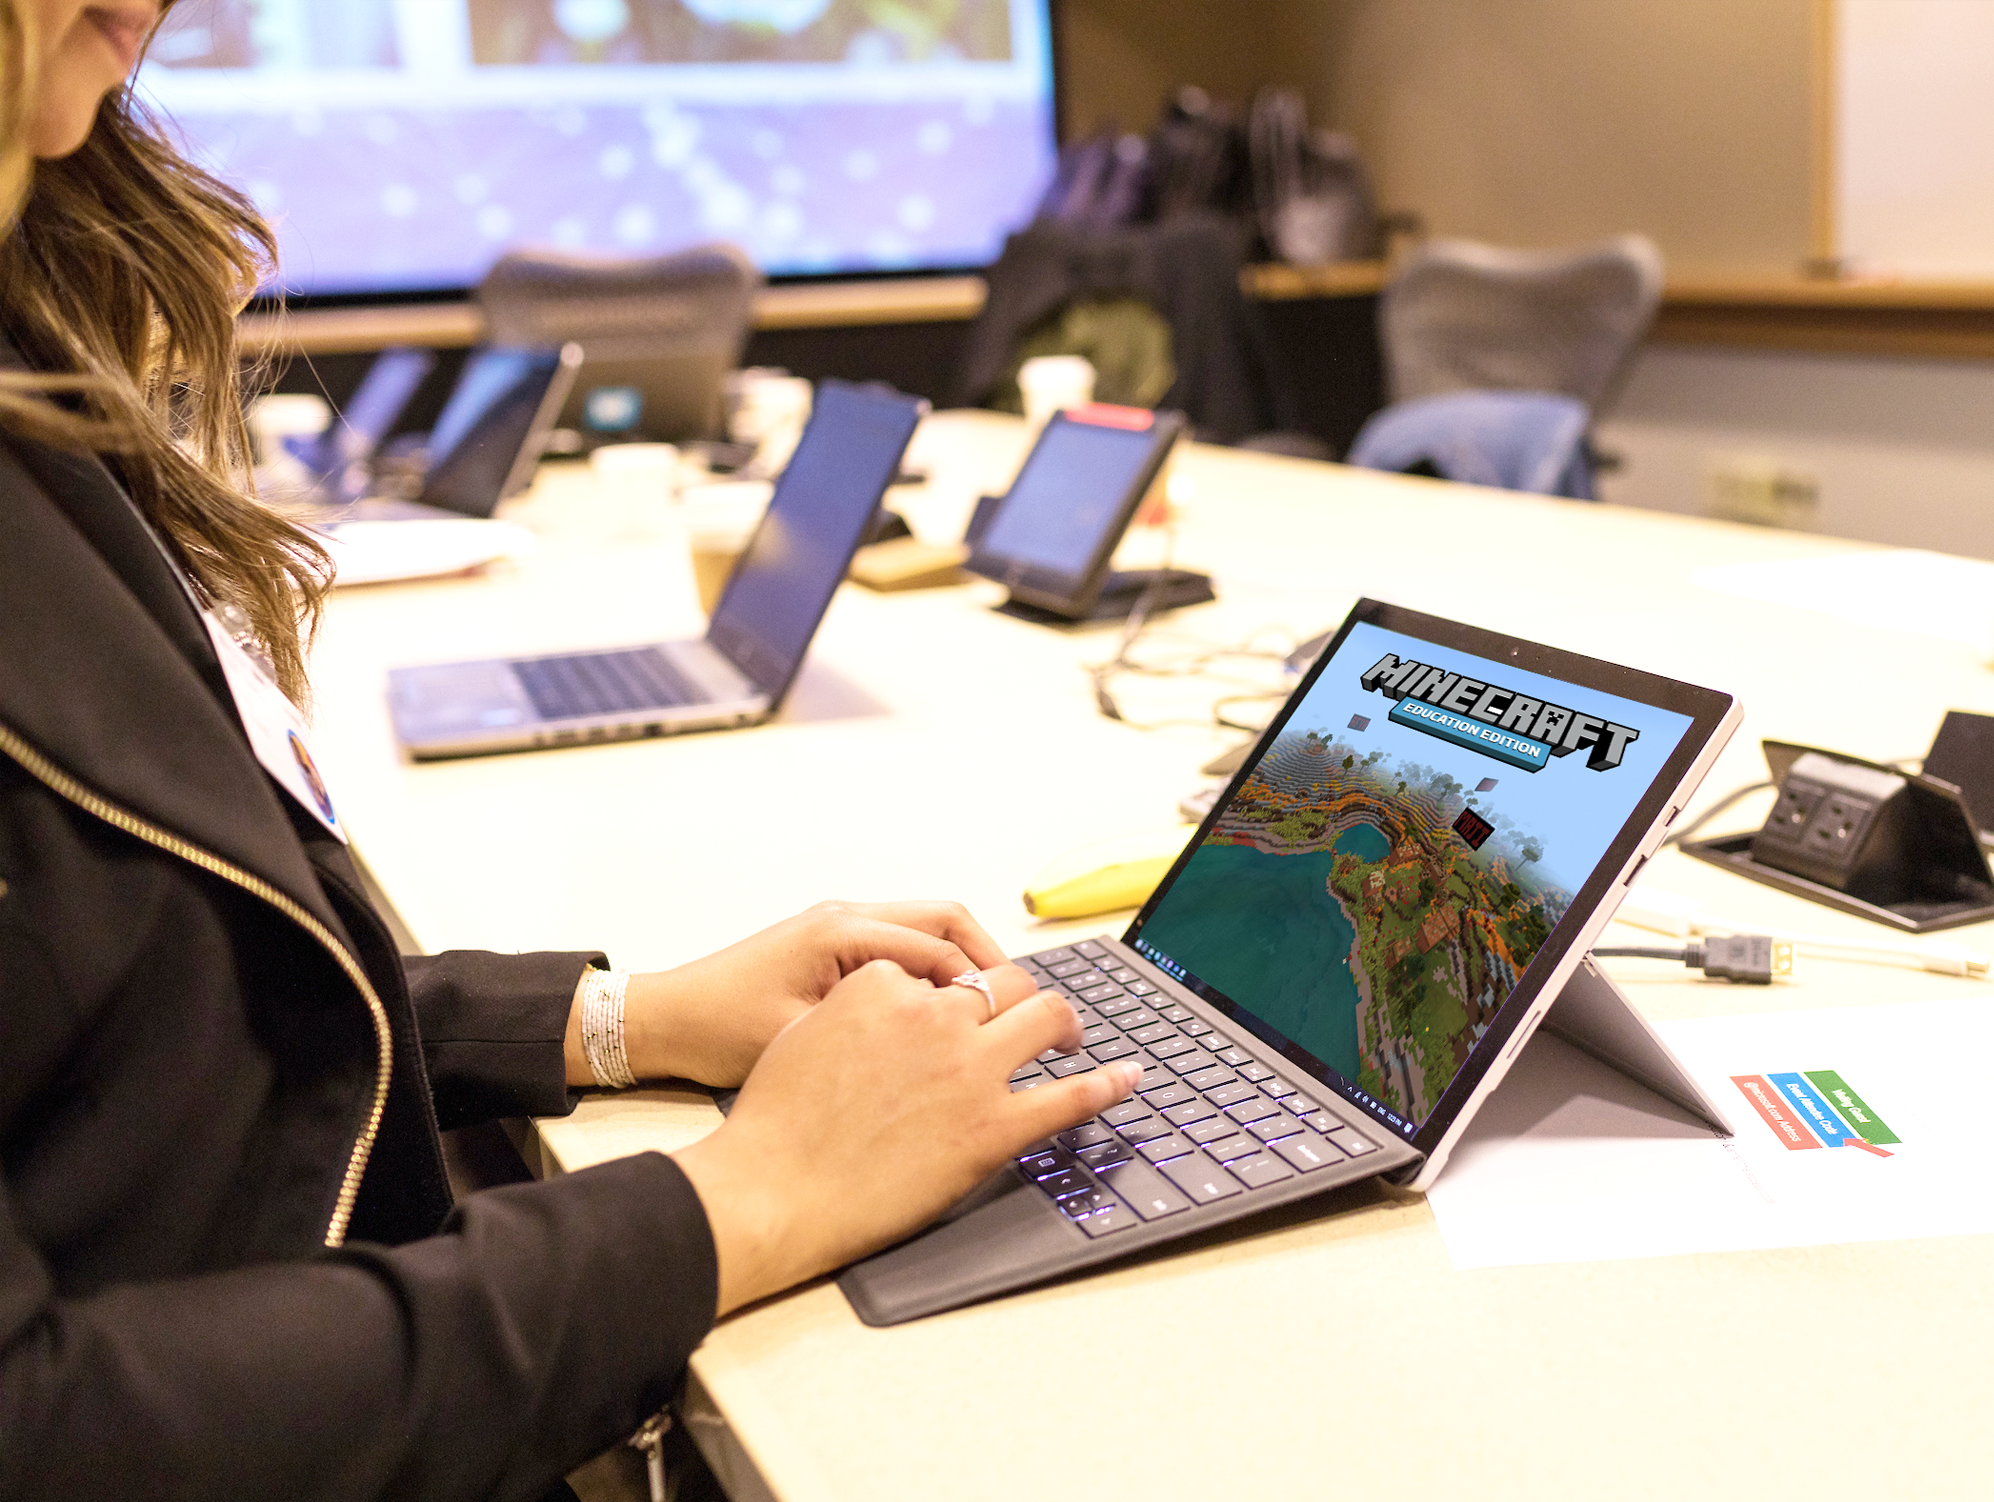 A student playing Minecraft on a laptop